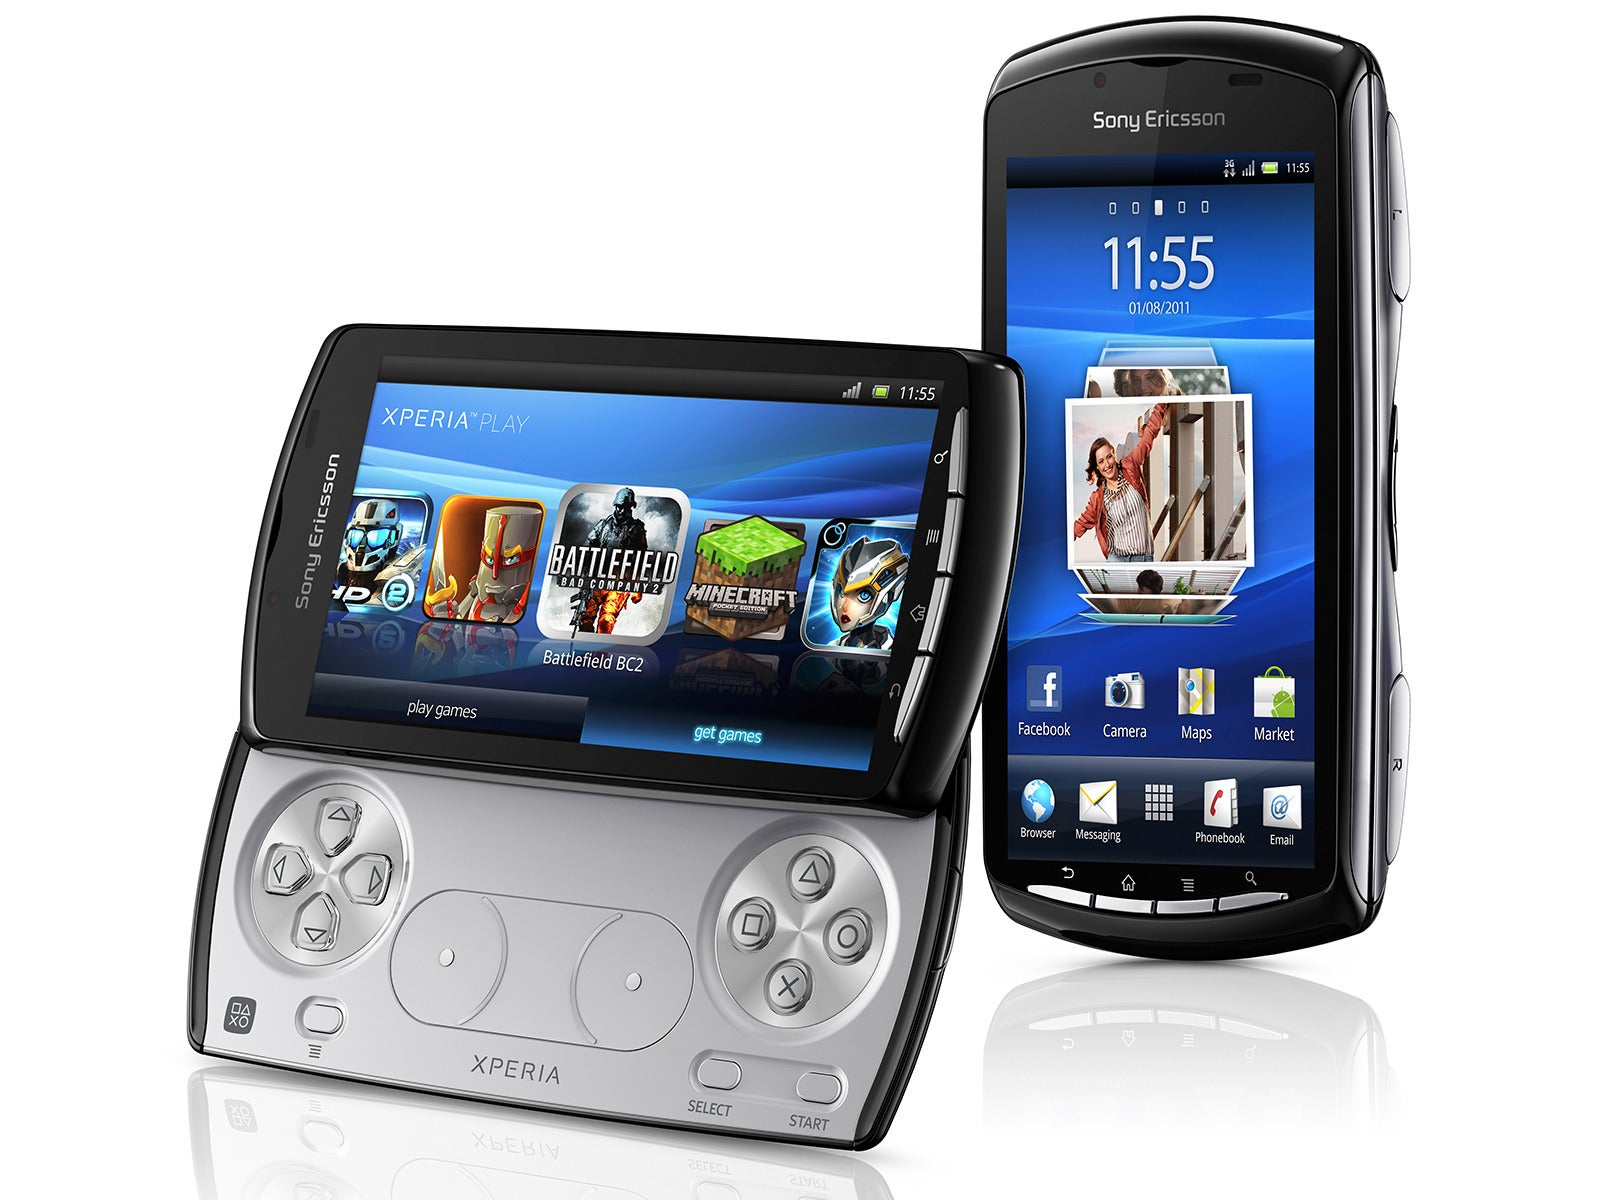 Xperia Play Themes and Apps